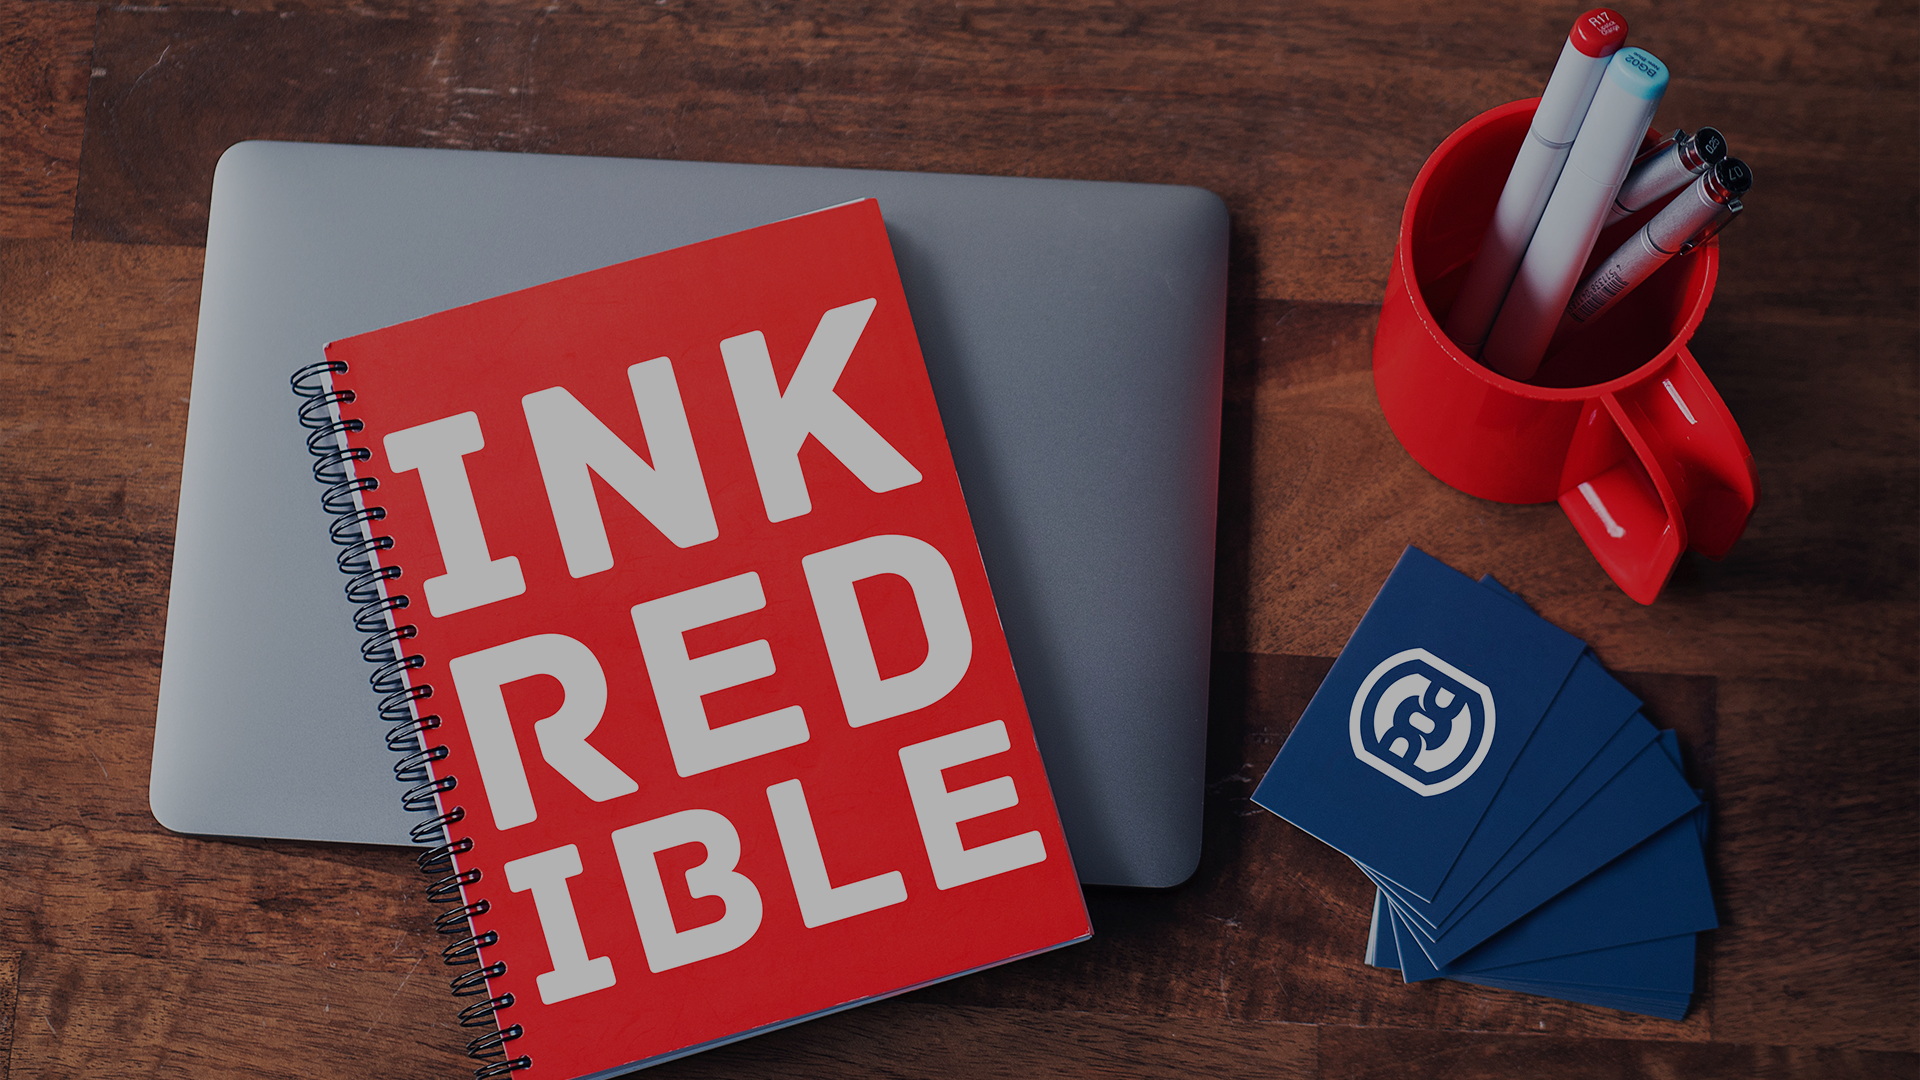 branding ideas to have printed